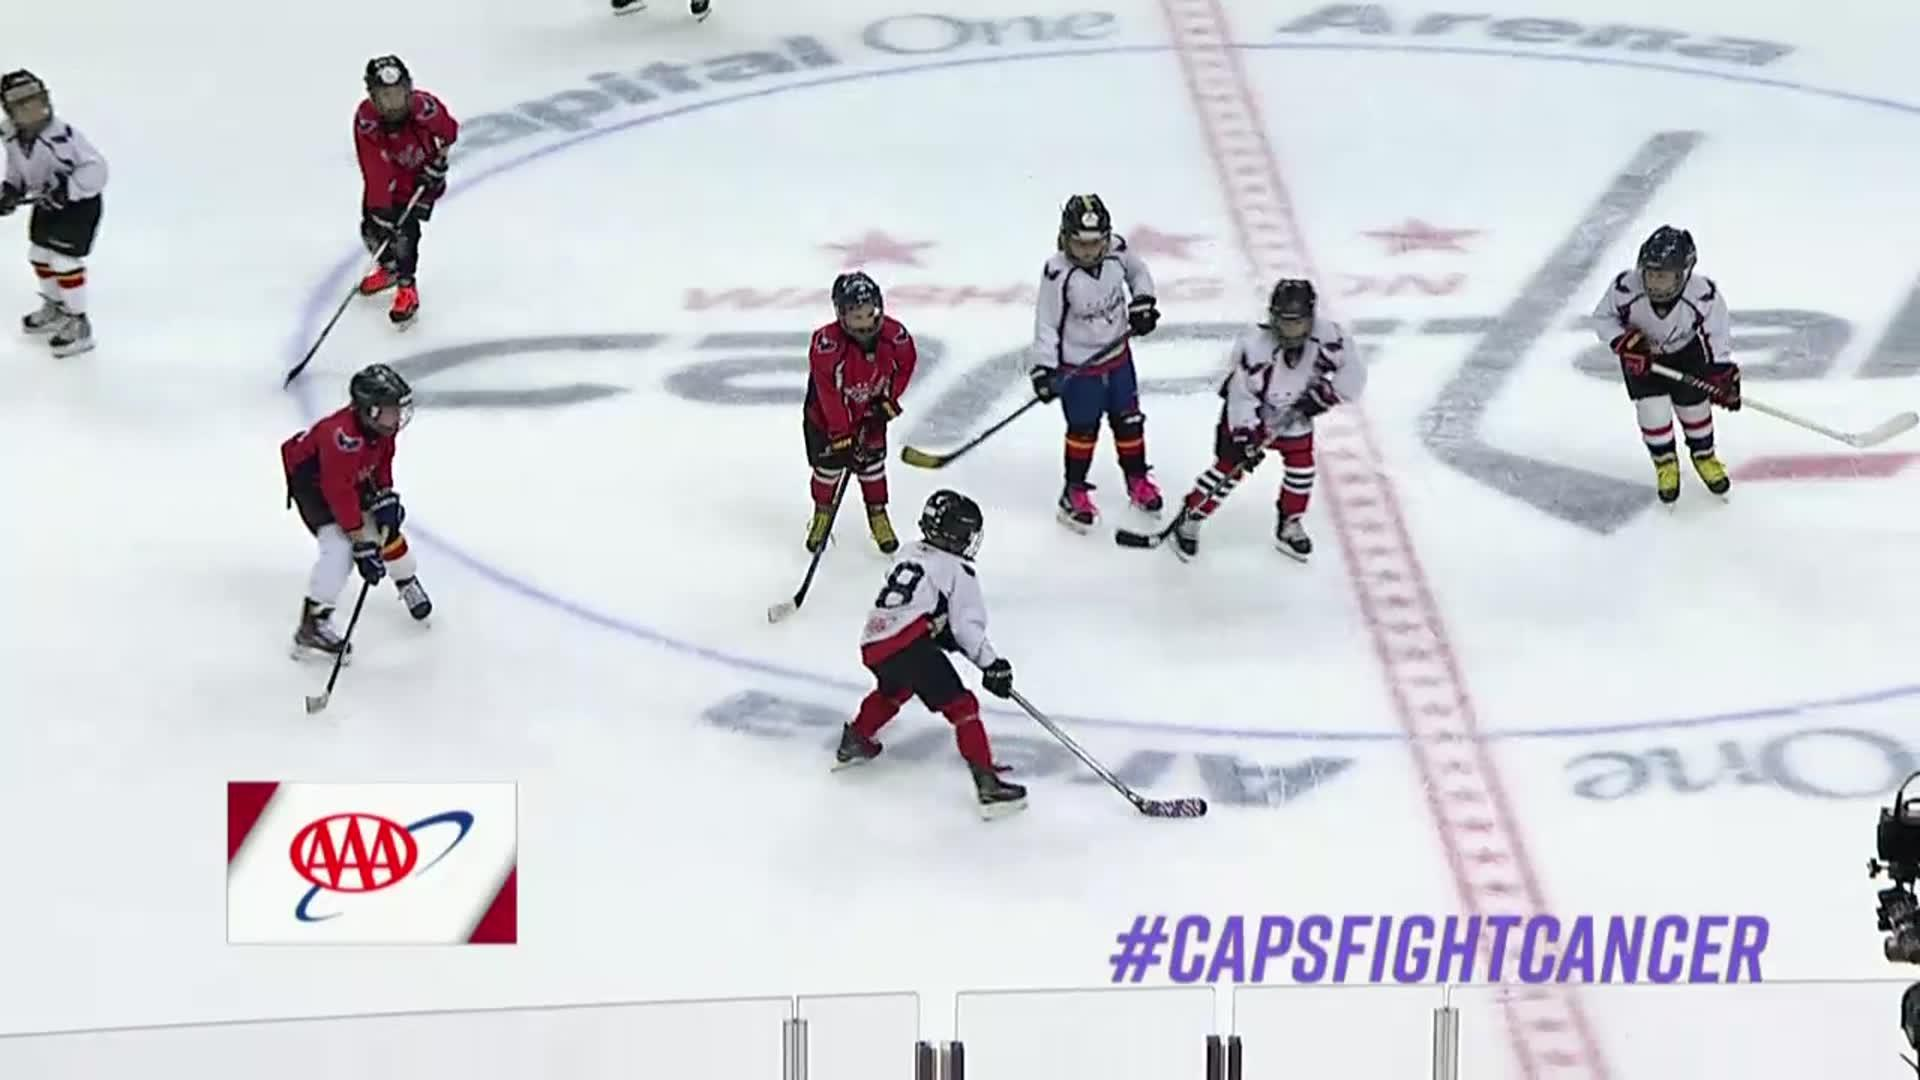 #CapsIsles Mites on Ice 11/2/17